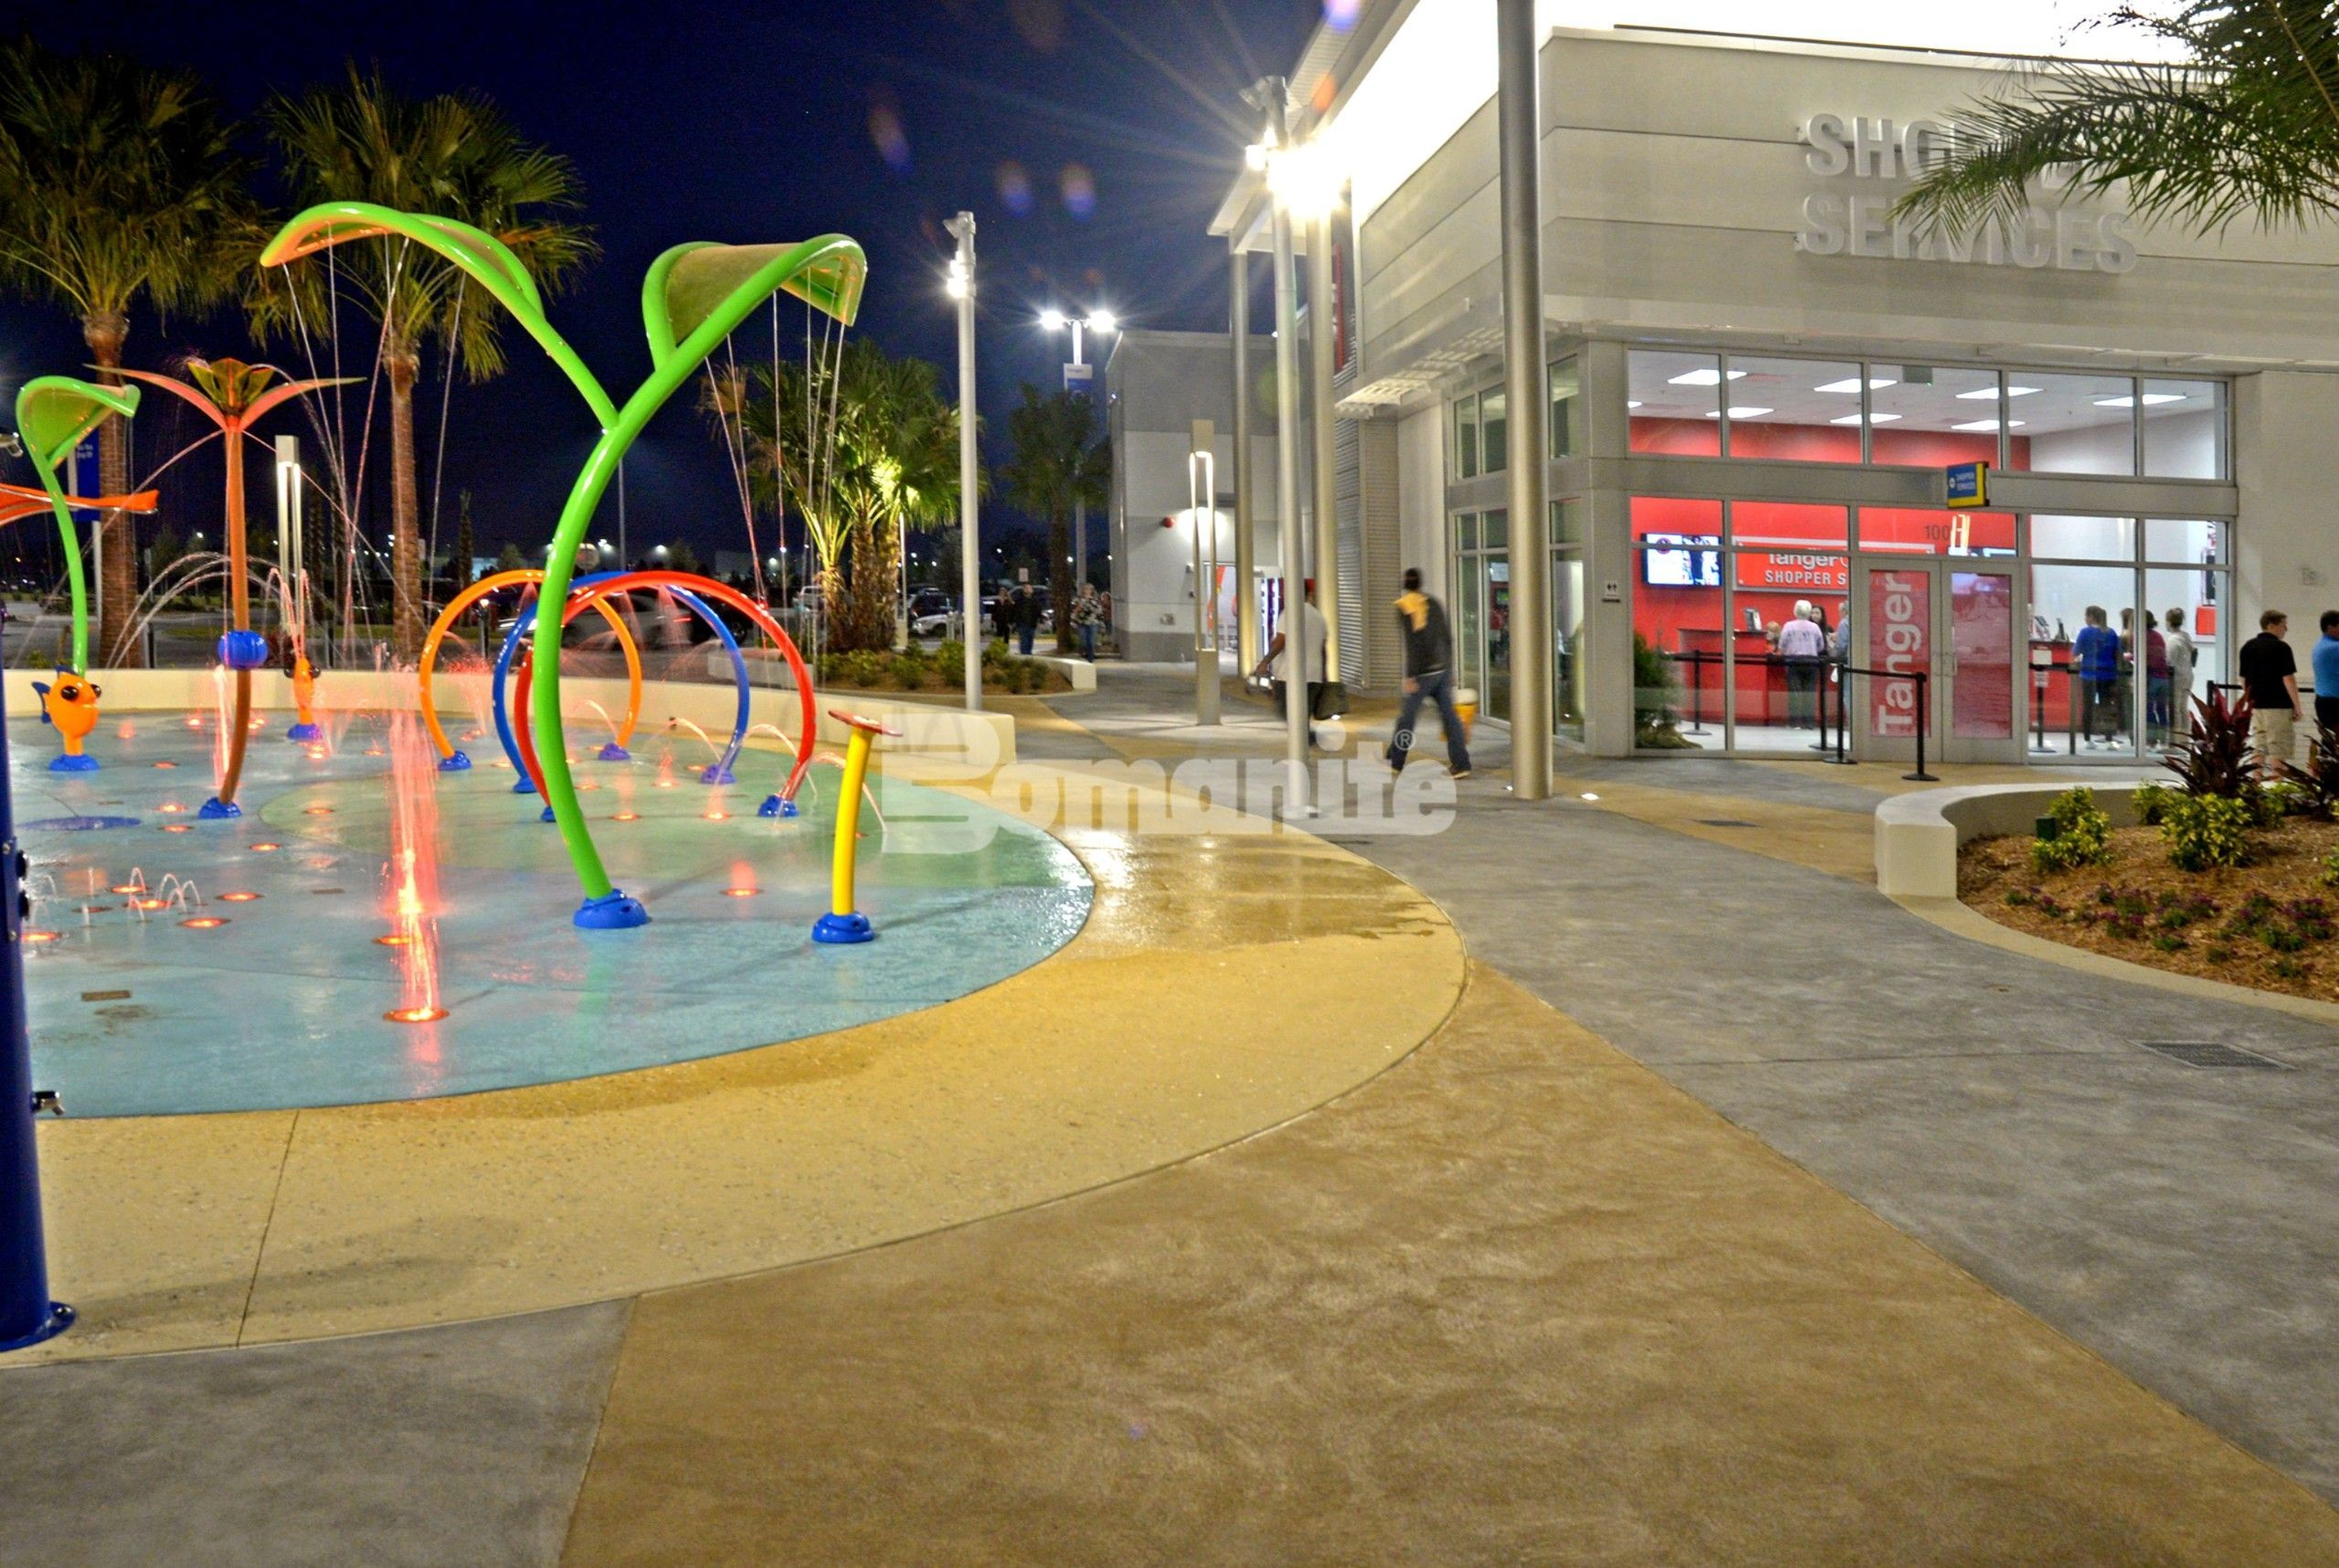 Tanger Outlet Daytona Beach creates Bomanite Decorative Concrete splash pads to mimic the ocean and sand beach vibe installed by Bomanite Licensee Edwards Concrete Company located in Winter Garden, FL.